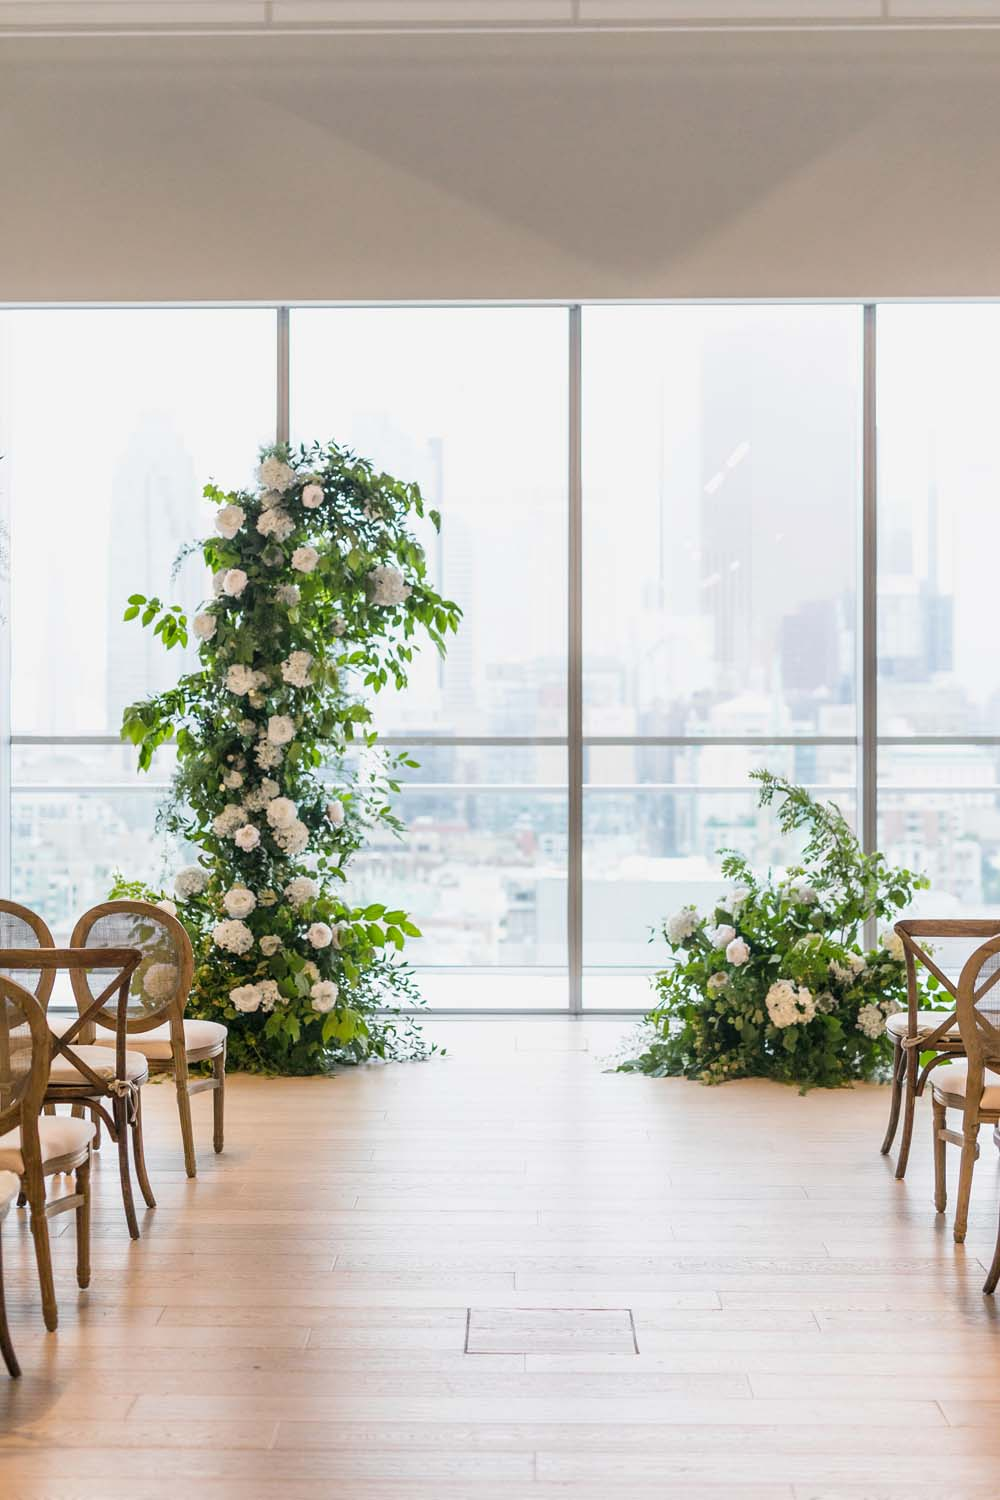 This Toronto Wedding Brings Nature to the City - Arch